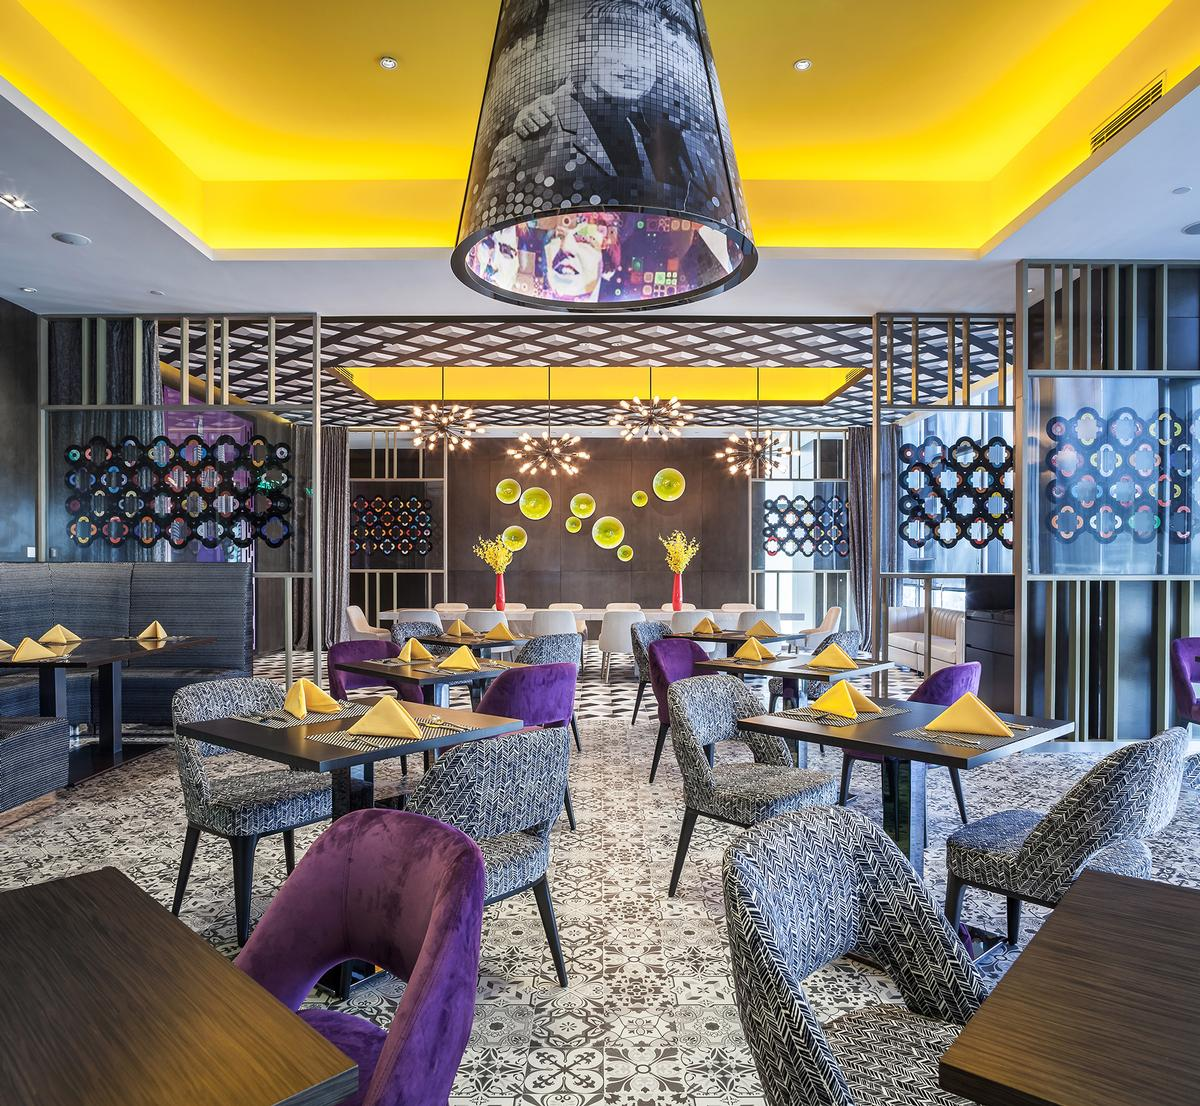 CL3 Architects, led by William Lim, were commissioned by developer Mission Hill Properties to design the Hard Rock Hotel Shenzhen / Nirut Benjabanpot